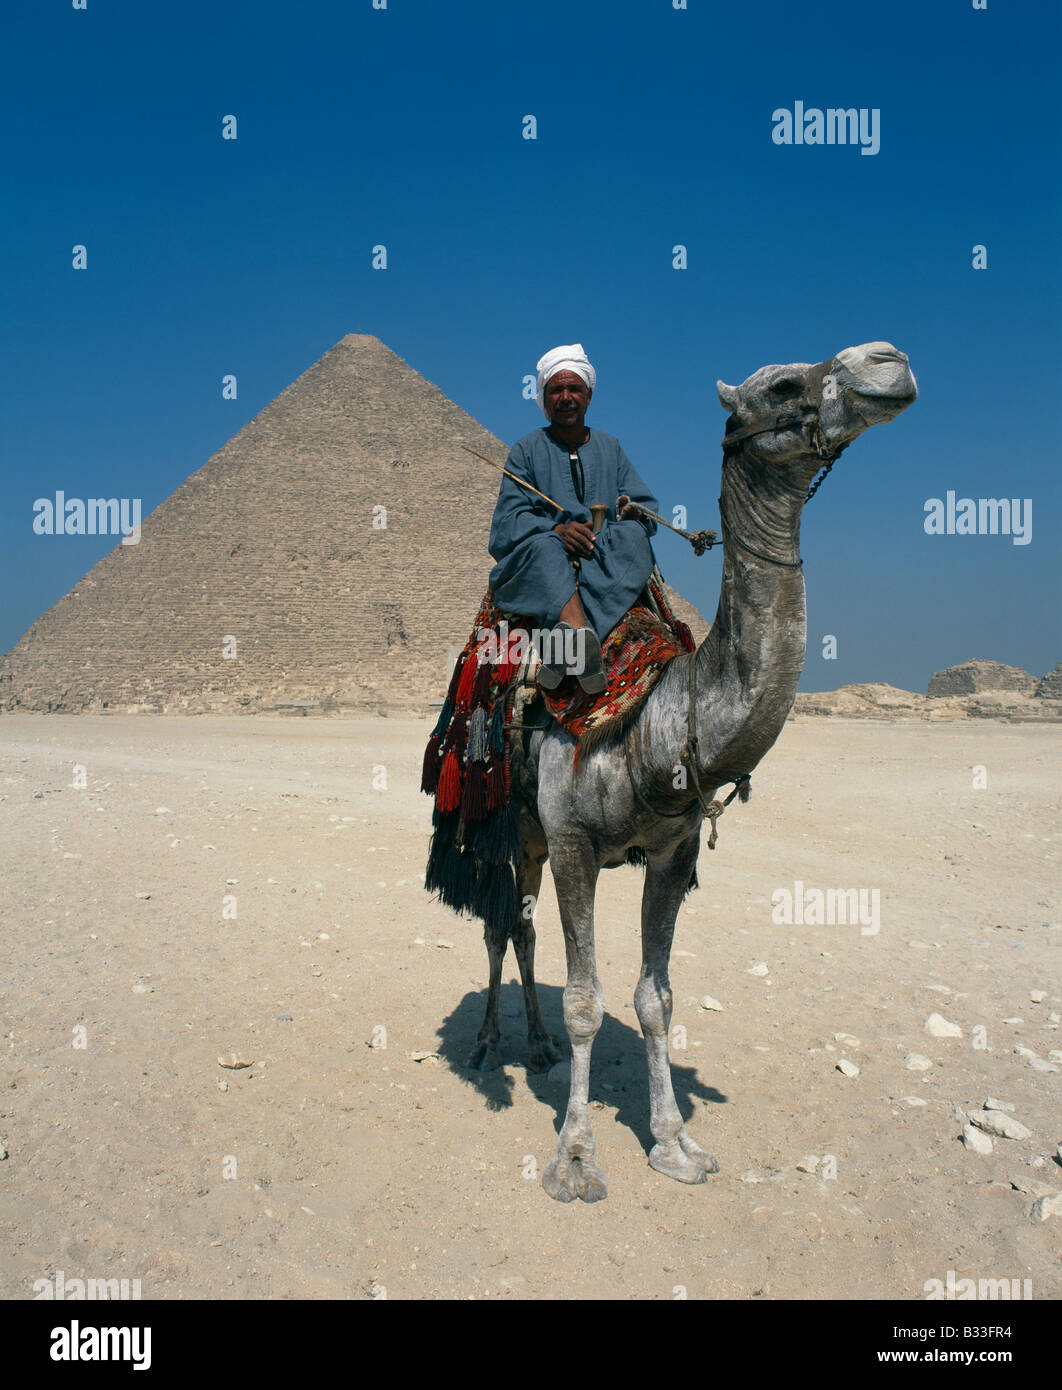 Camel with owner at Pyramids, Giza, Egypt - Stock Image